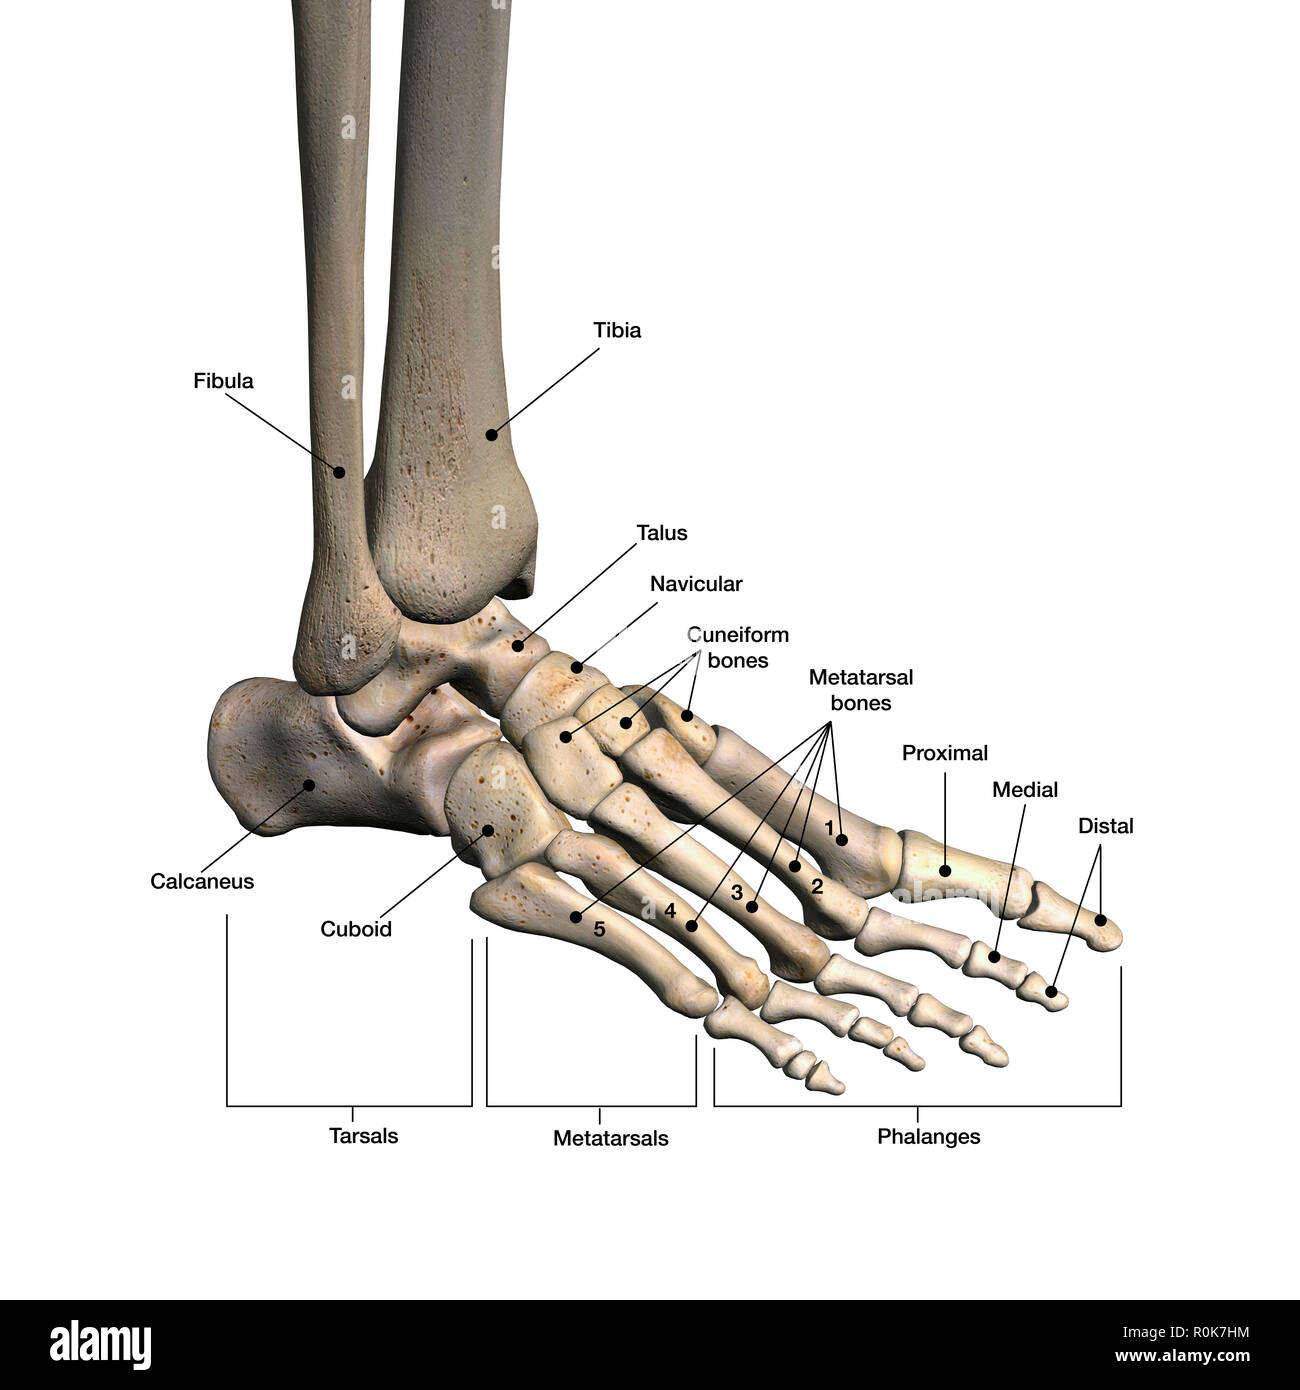 hight resolution of bones of human foot with labels